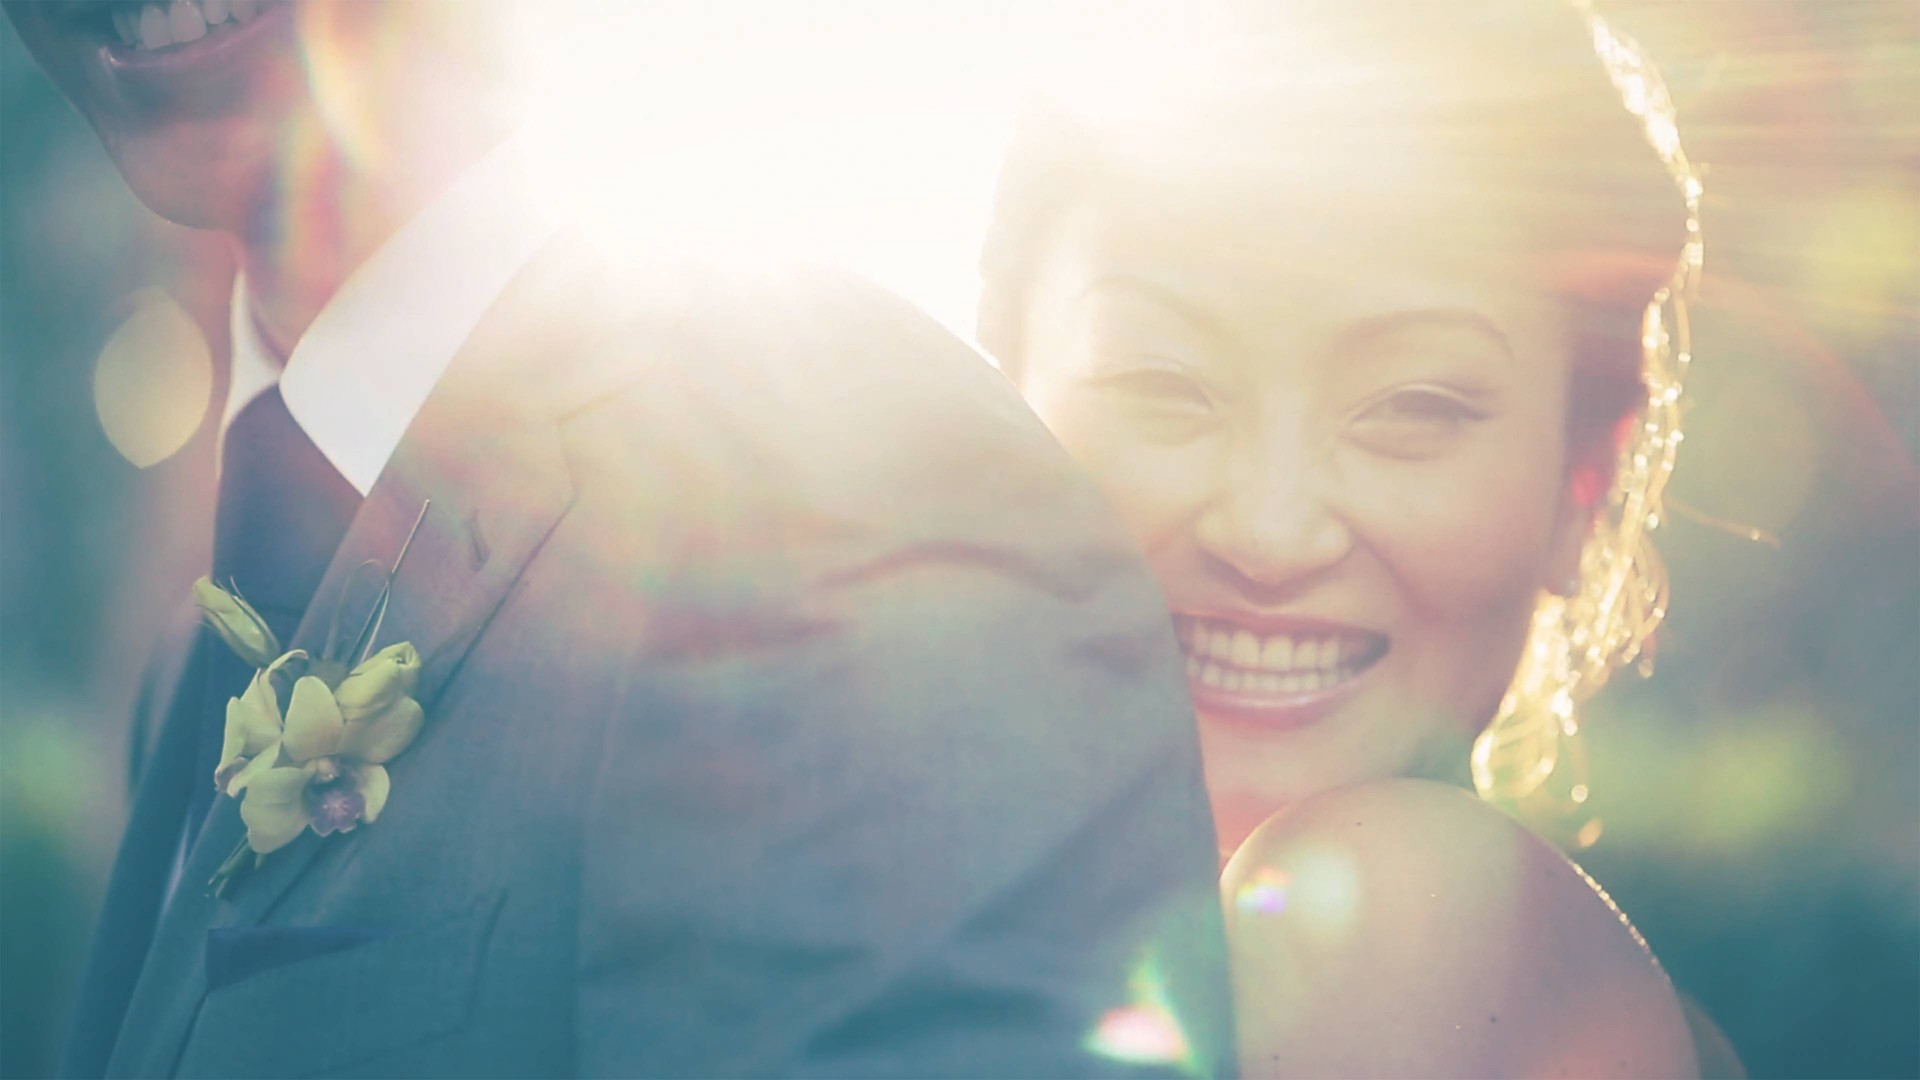 Toned photo of women smiling with sun flare behind her